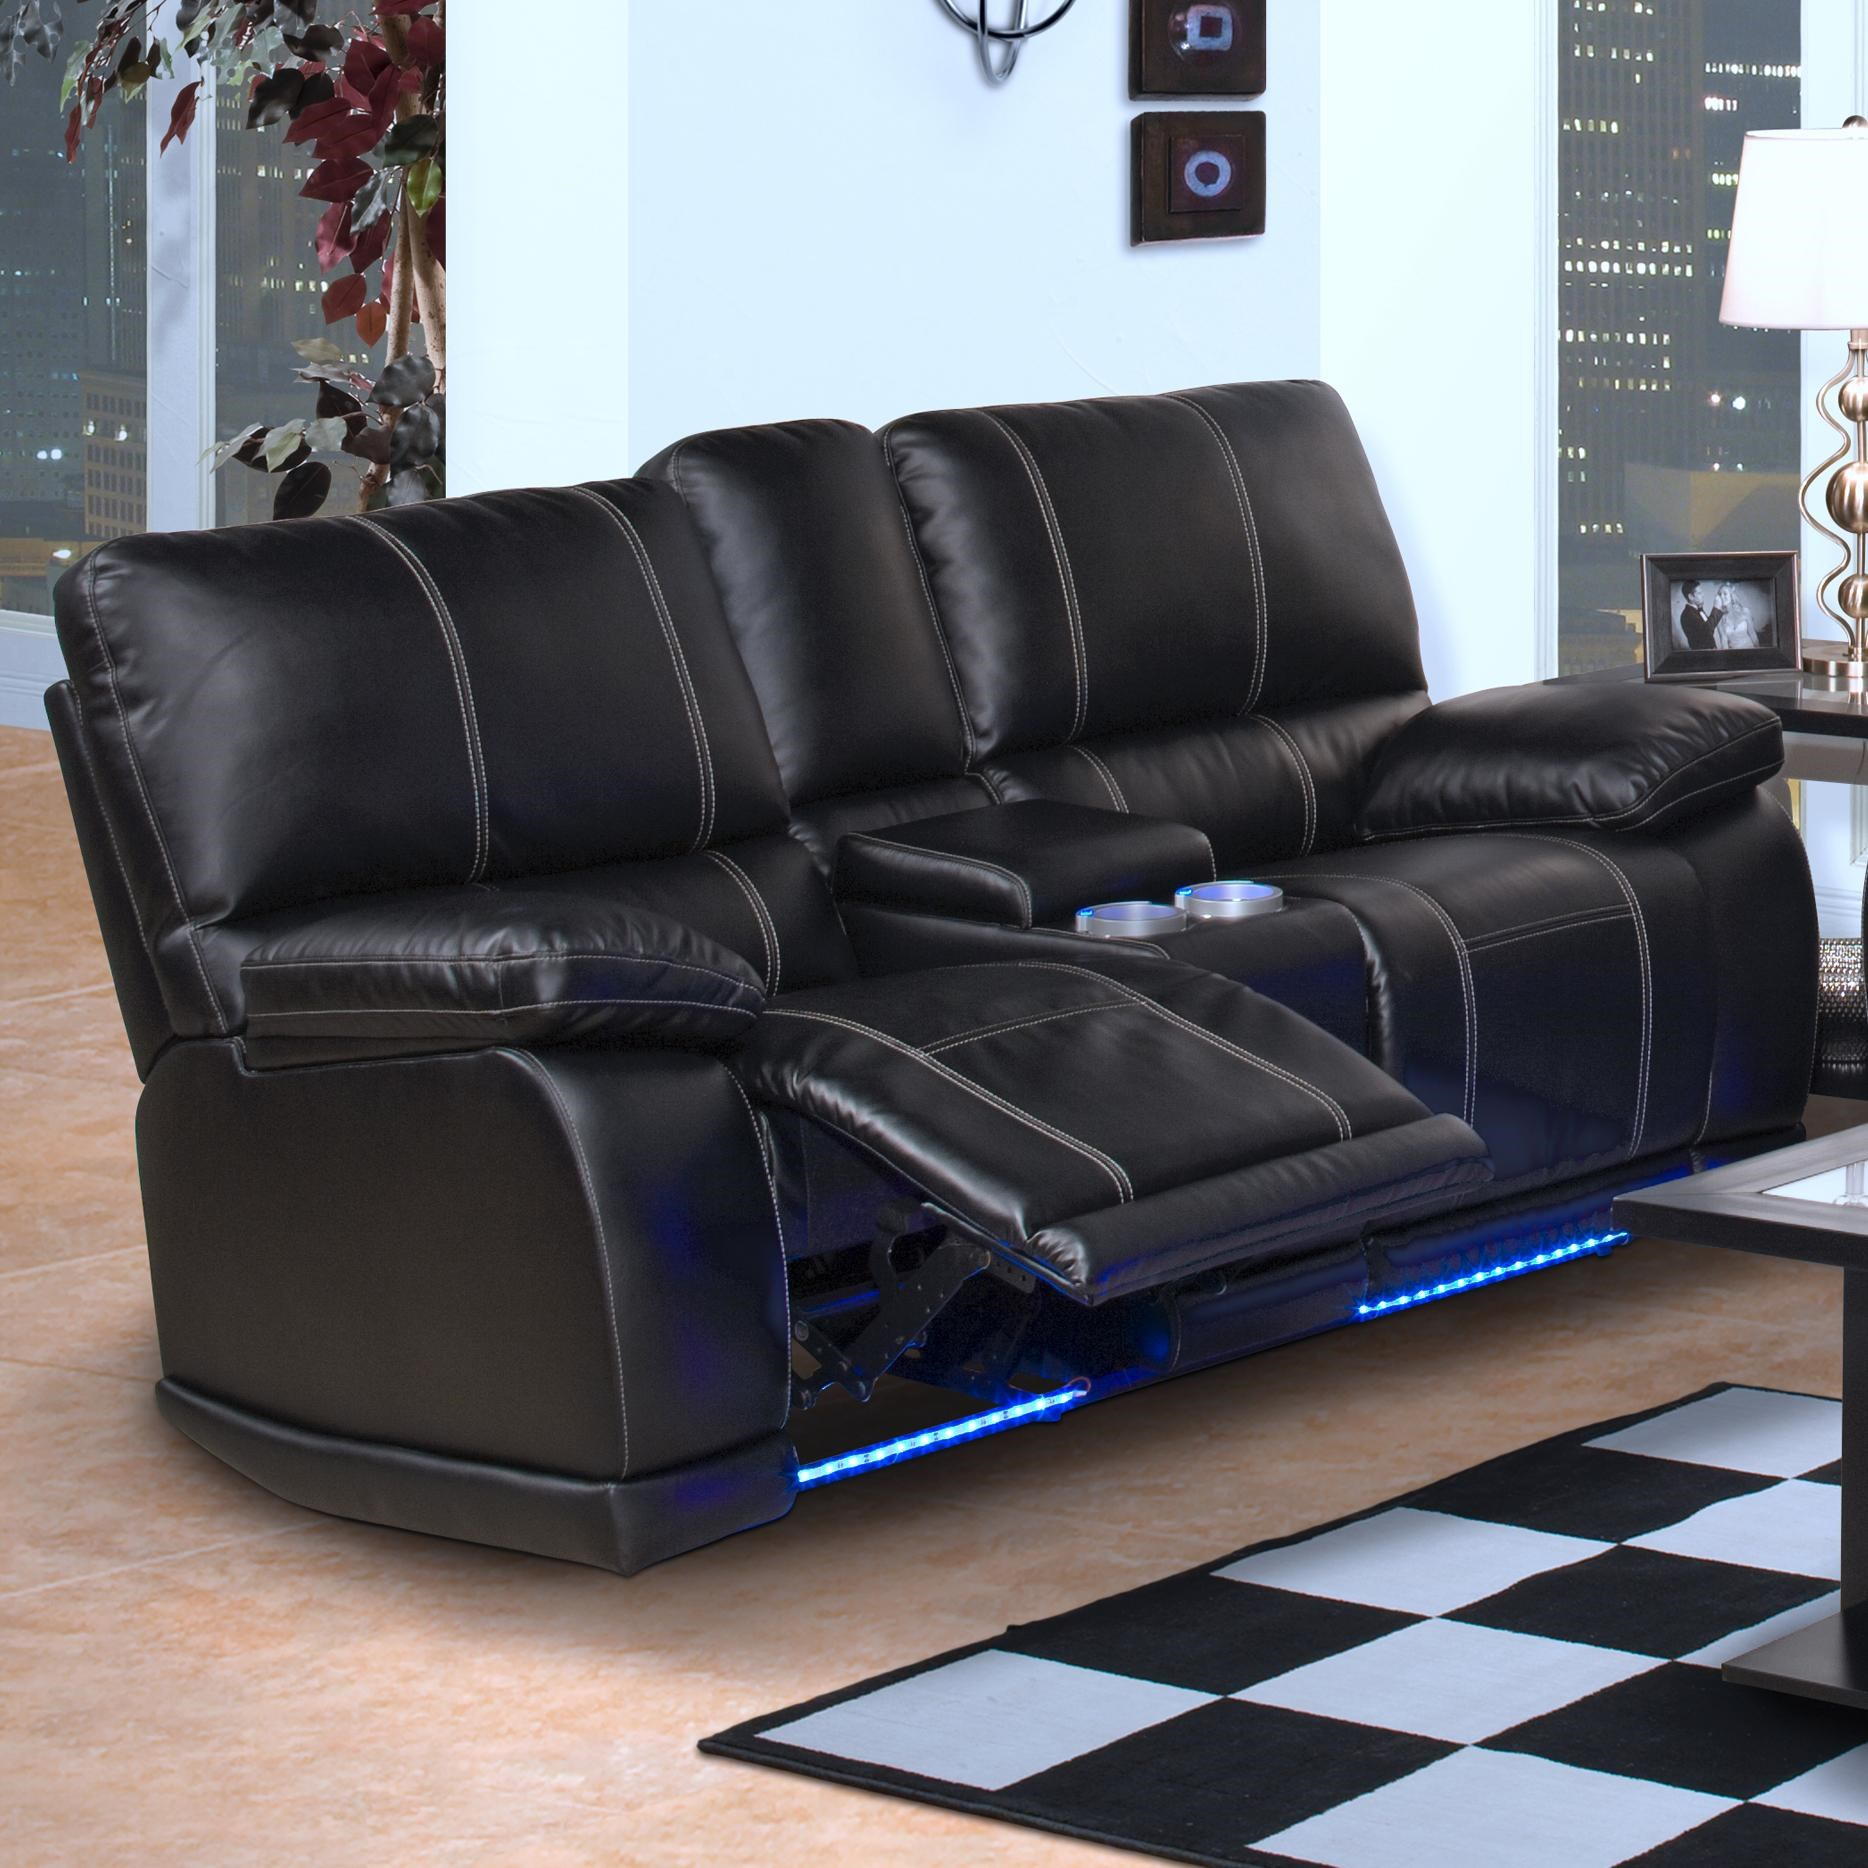 Charmant New Classic Electra Contemporary Dual Recliner Console Loveseat With Cup  Holders And Storage